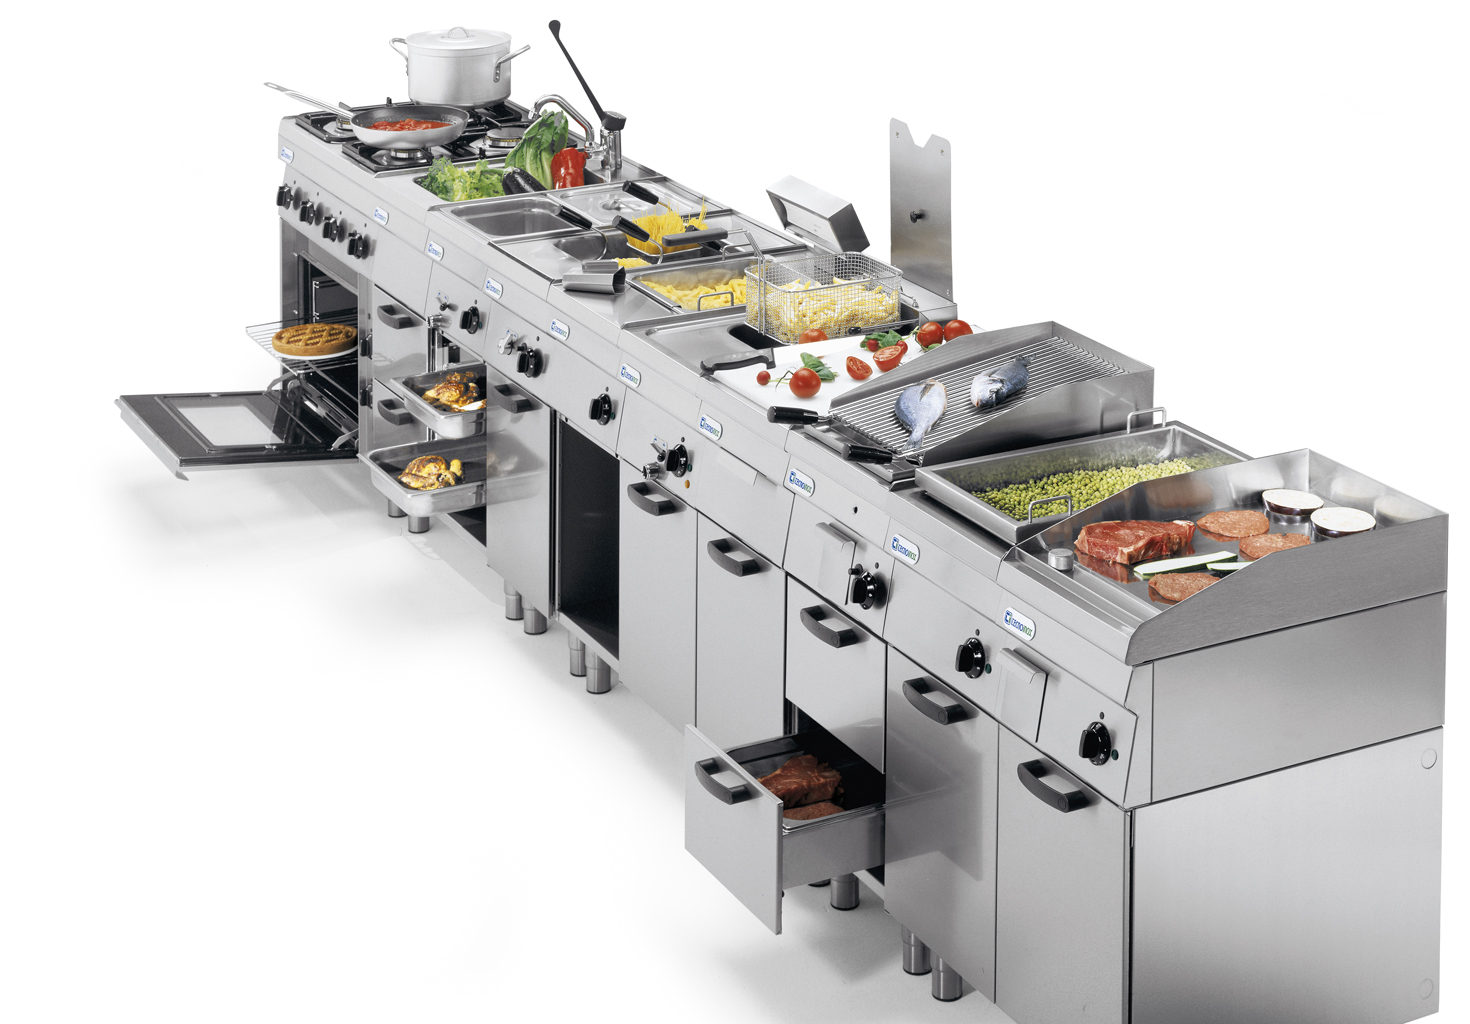 Restaurant commercial kitchen equipment in rochester ny Kitchen diner design tool